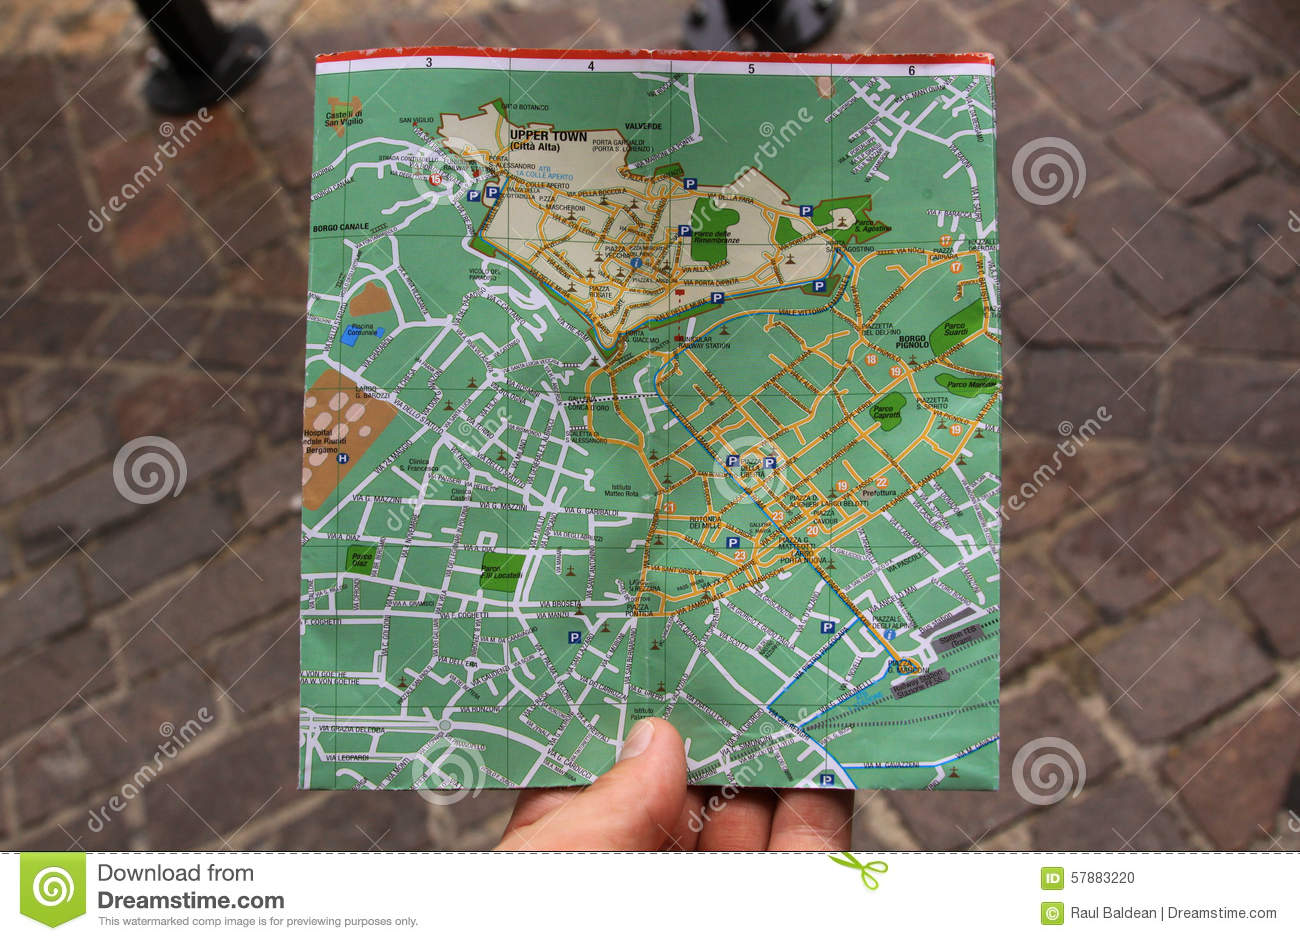 Searching for directions on a city map with hand